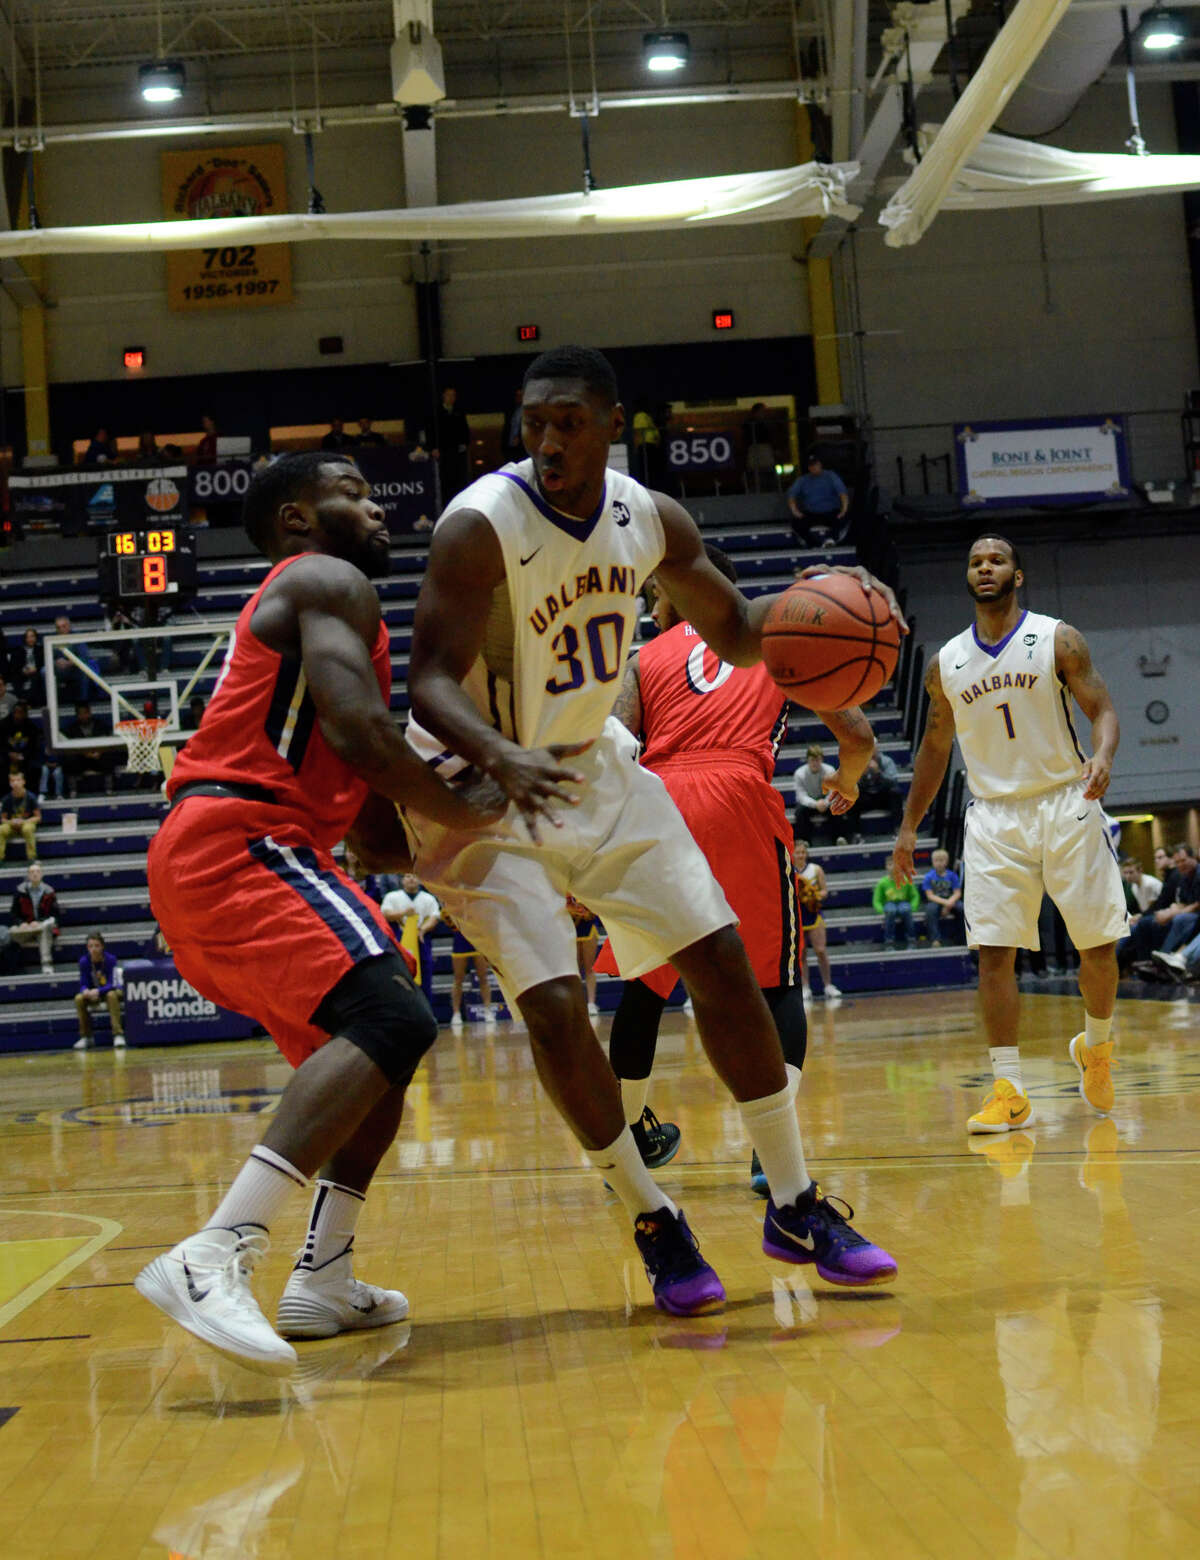 UAlbany forward Travis Charles moves past New Jersey Institute of Technology guard Rob Ukawuba during the Naismith Basketball Hall of Fame Classic, Friday, Nov. 27, 2015, at University at Albany in Albany, N.Y. (Jenn March/Special to the Times Union)